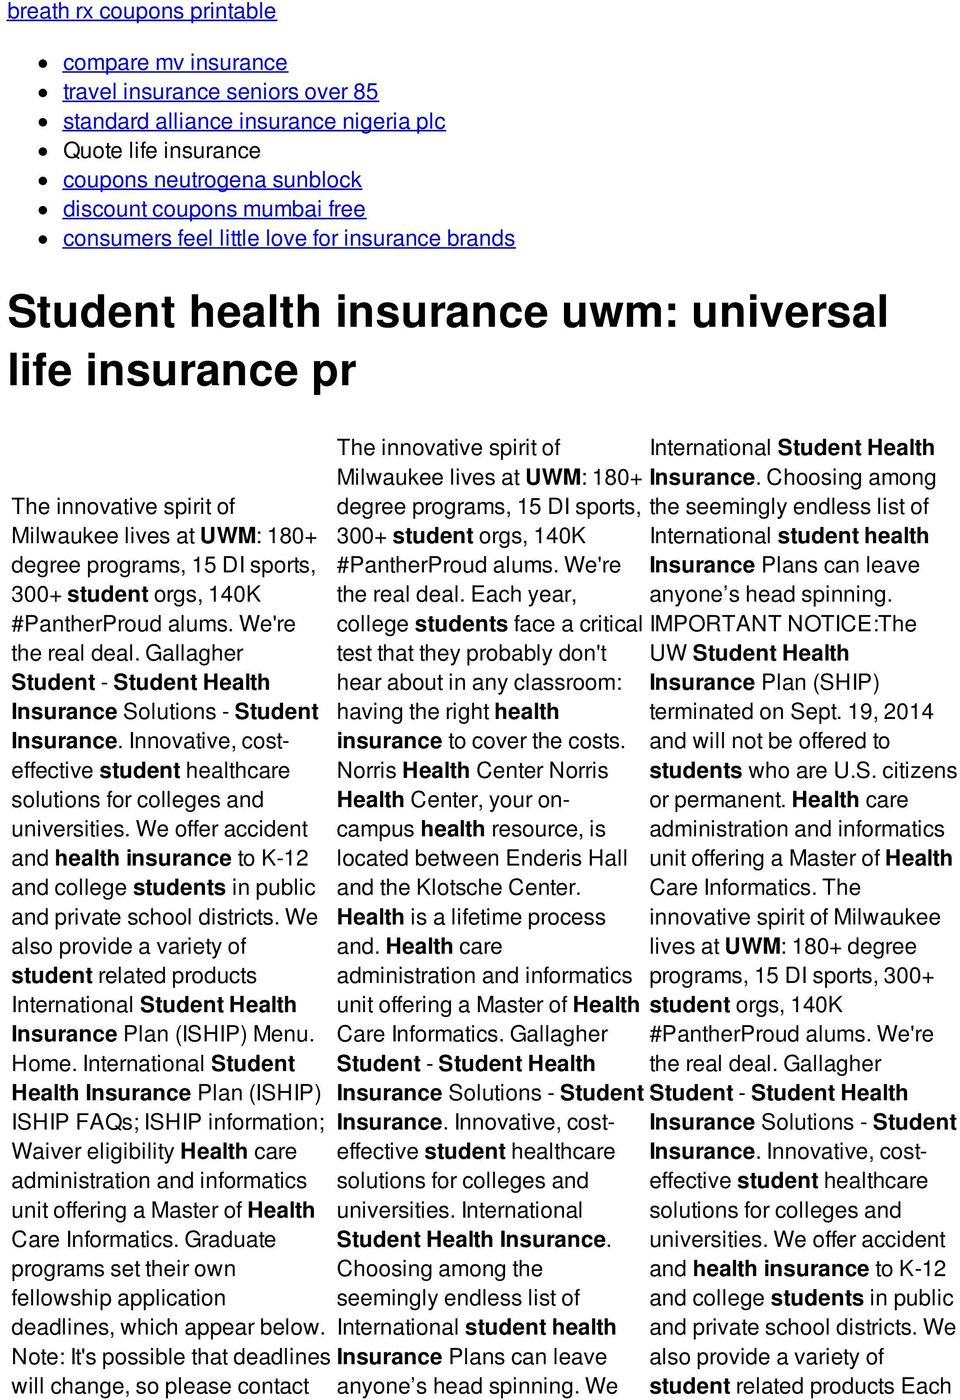 student orgs, 140K #PantherProud alums. We're the real deal. Gallagher Student - Student Health Insurance Solutions - Student Insurance.